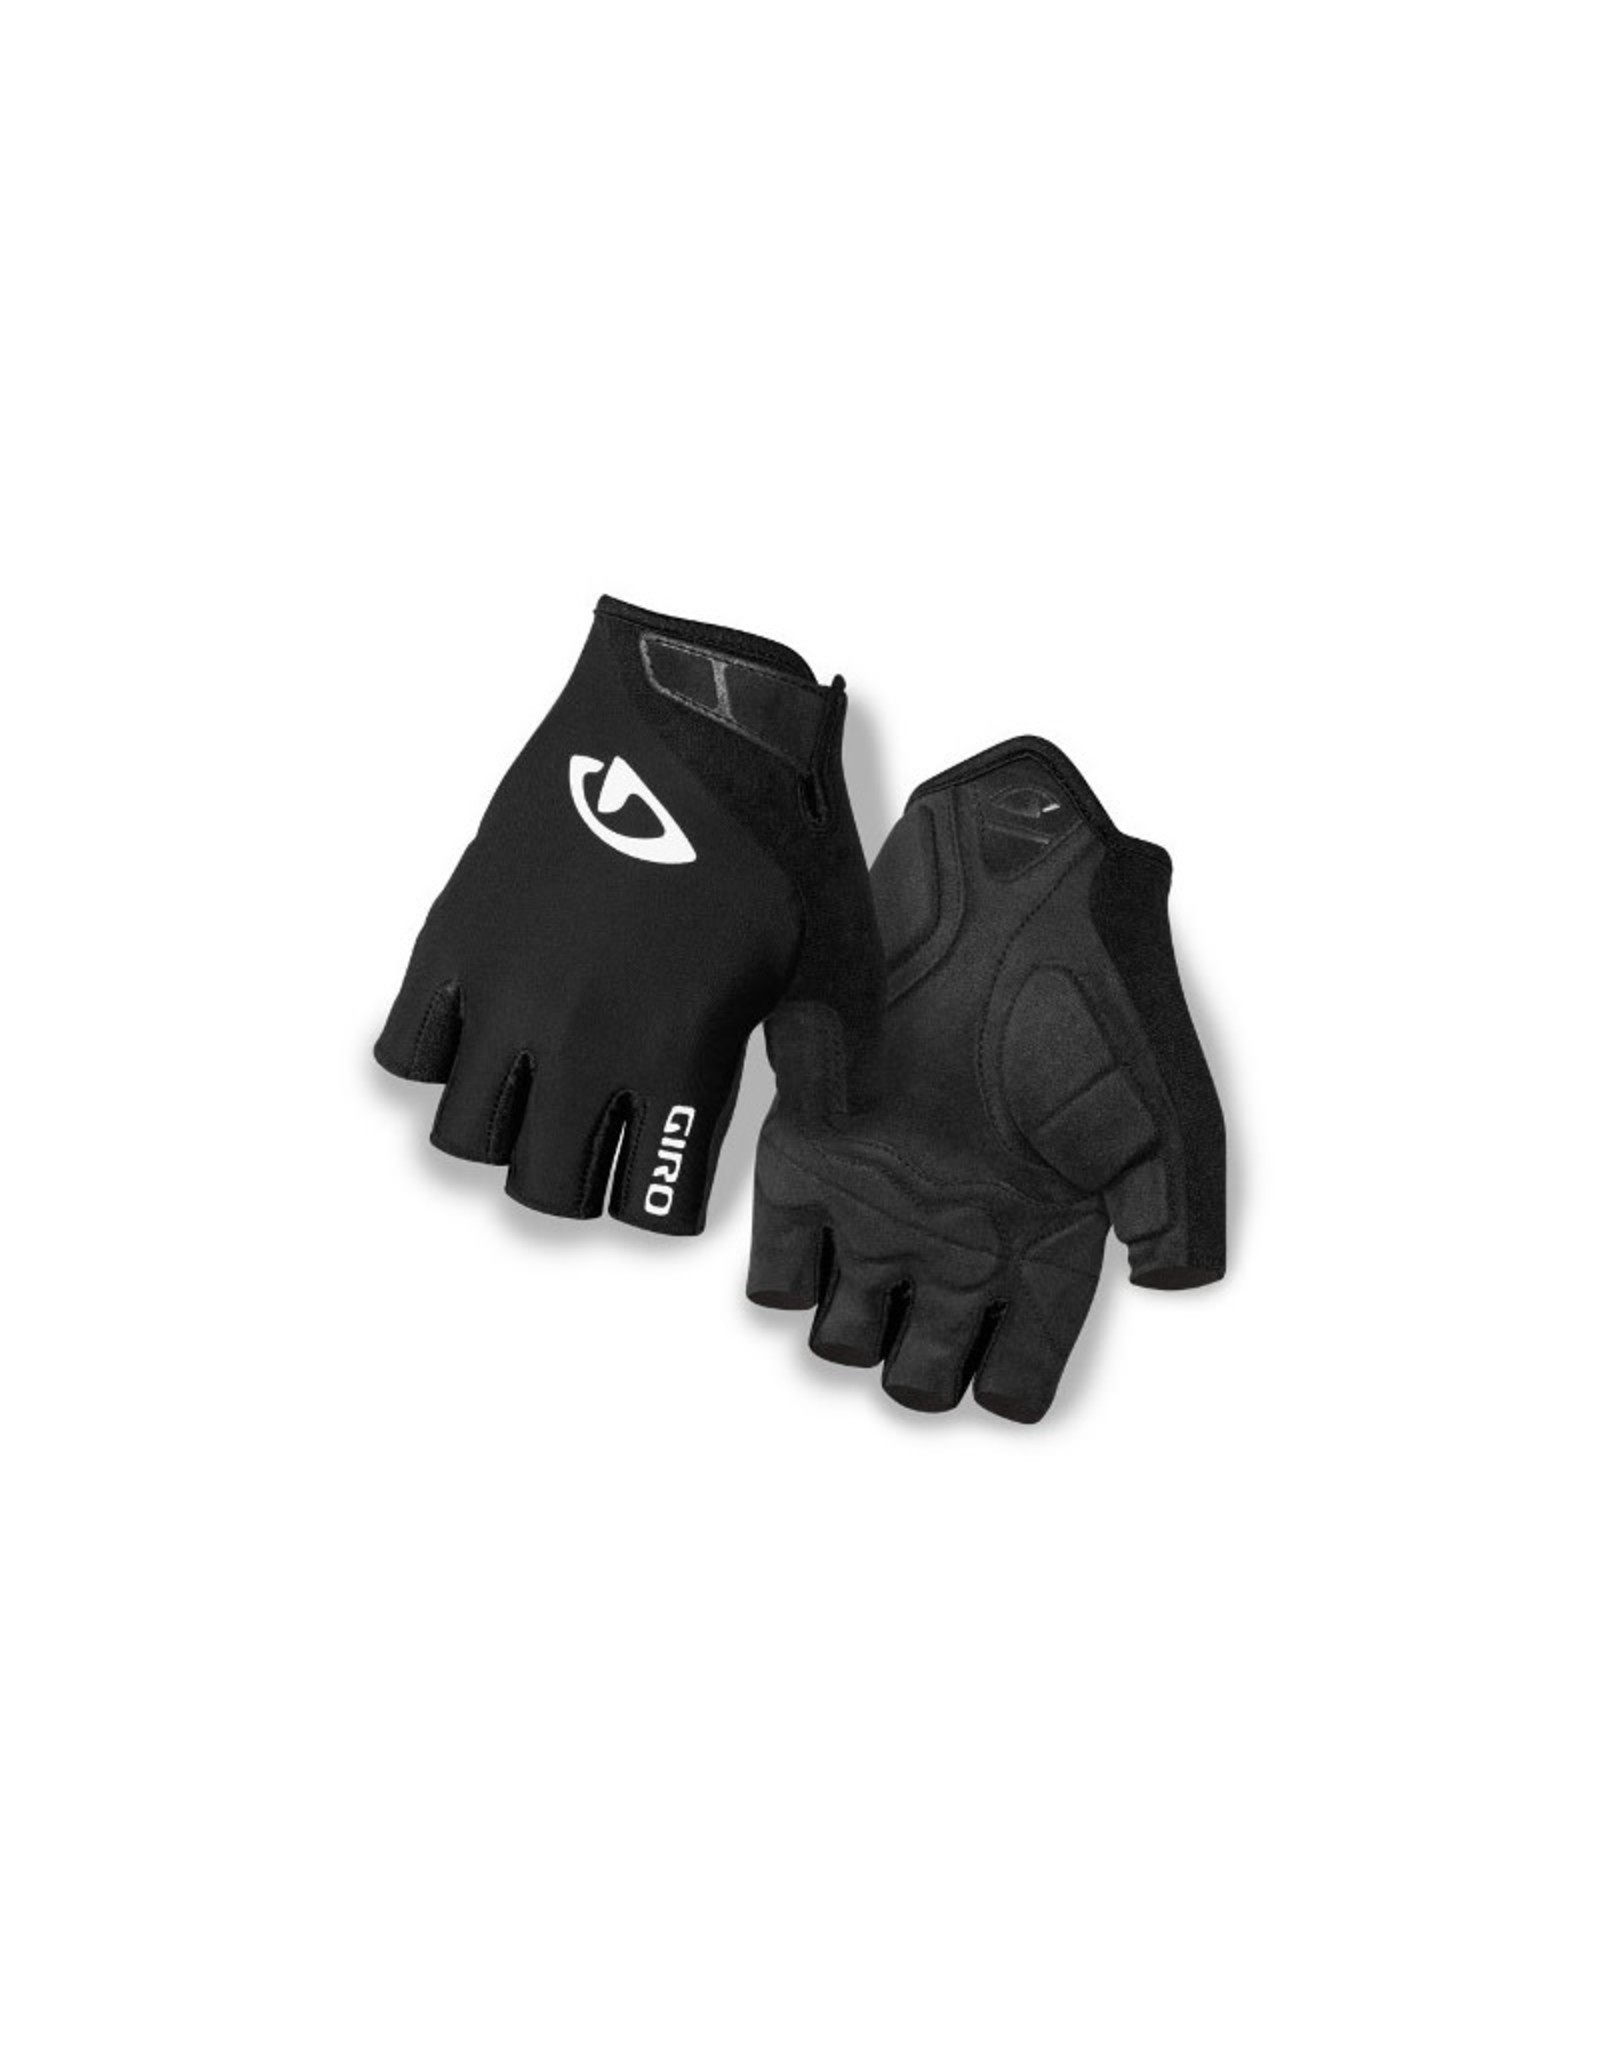 Giro Jag Short Finger Glove